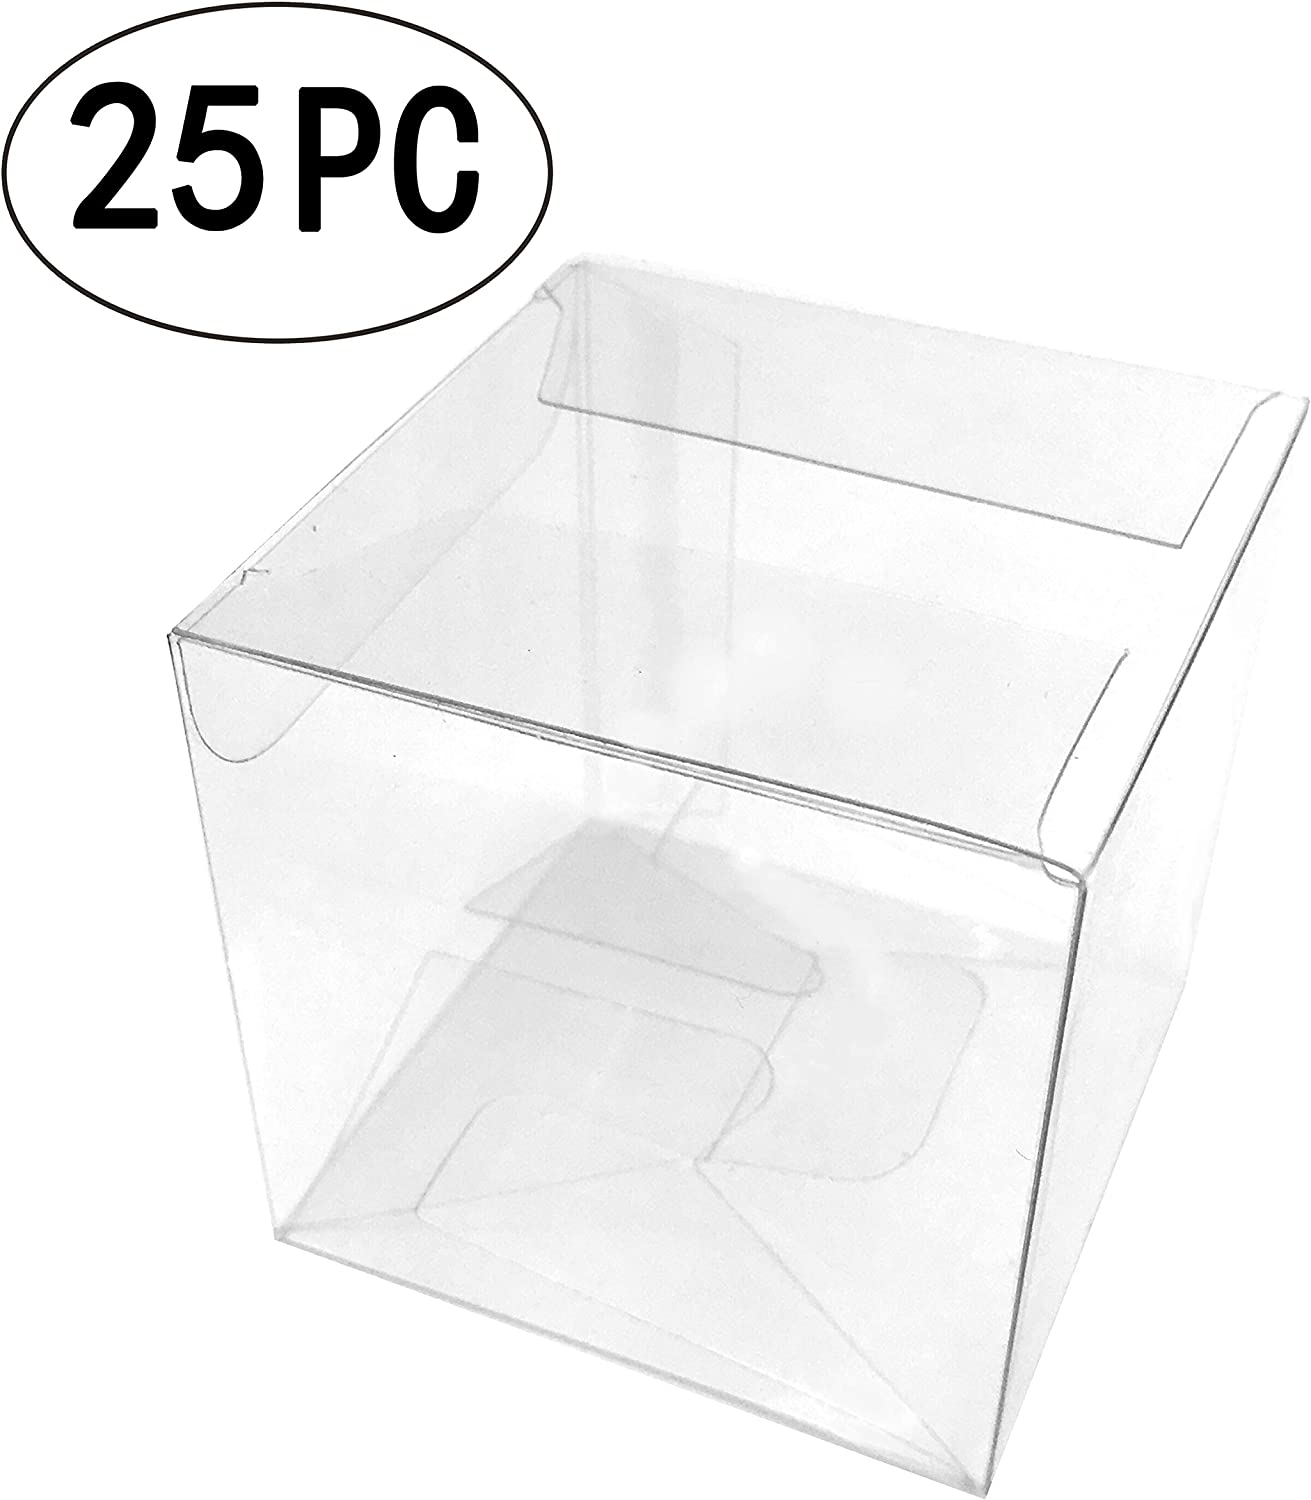 Clear Square Candy Boxes Transparent Thank You Treat Boxes Plastic PET Gift Packaging Boxes Wedding Baby Shower Party Favors Boxes, 25pc